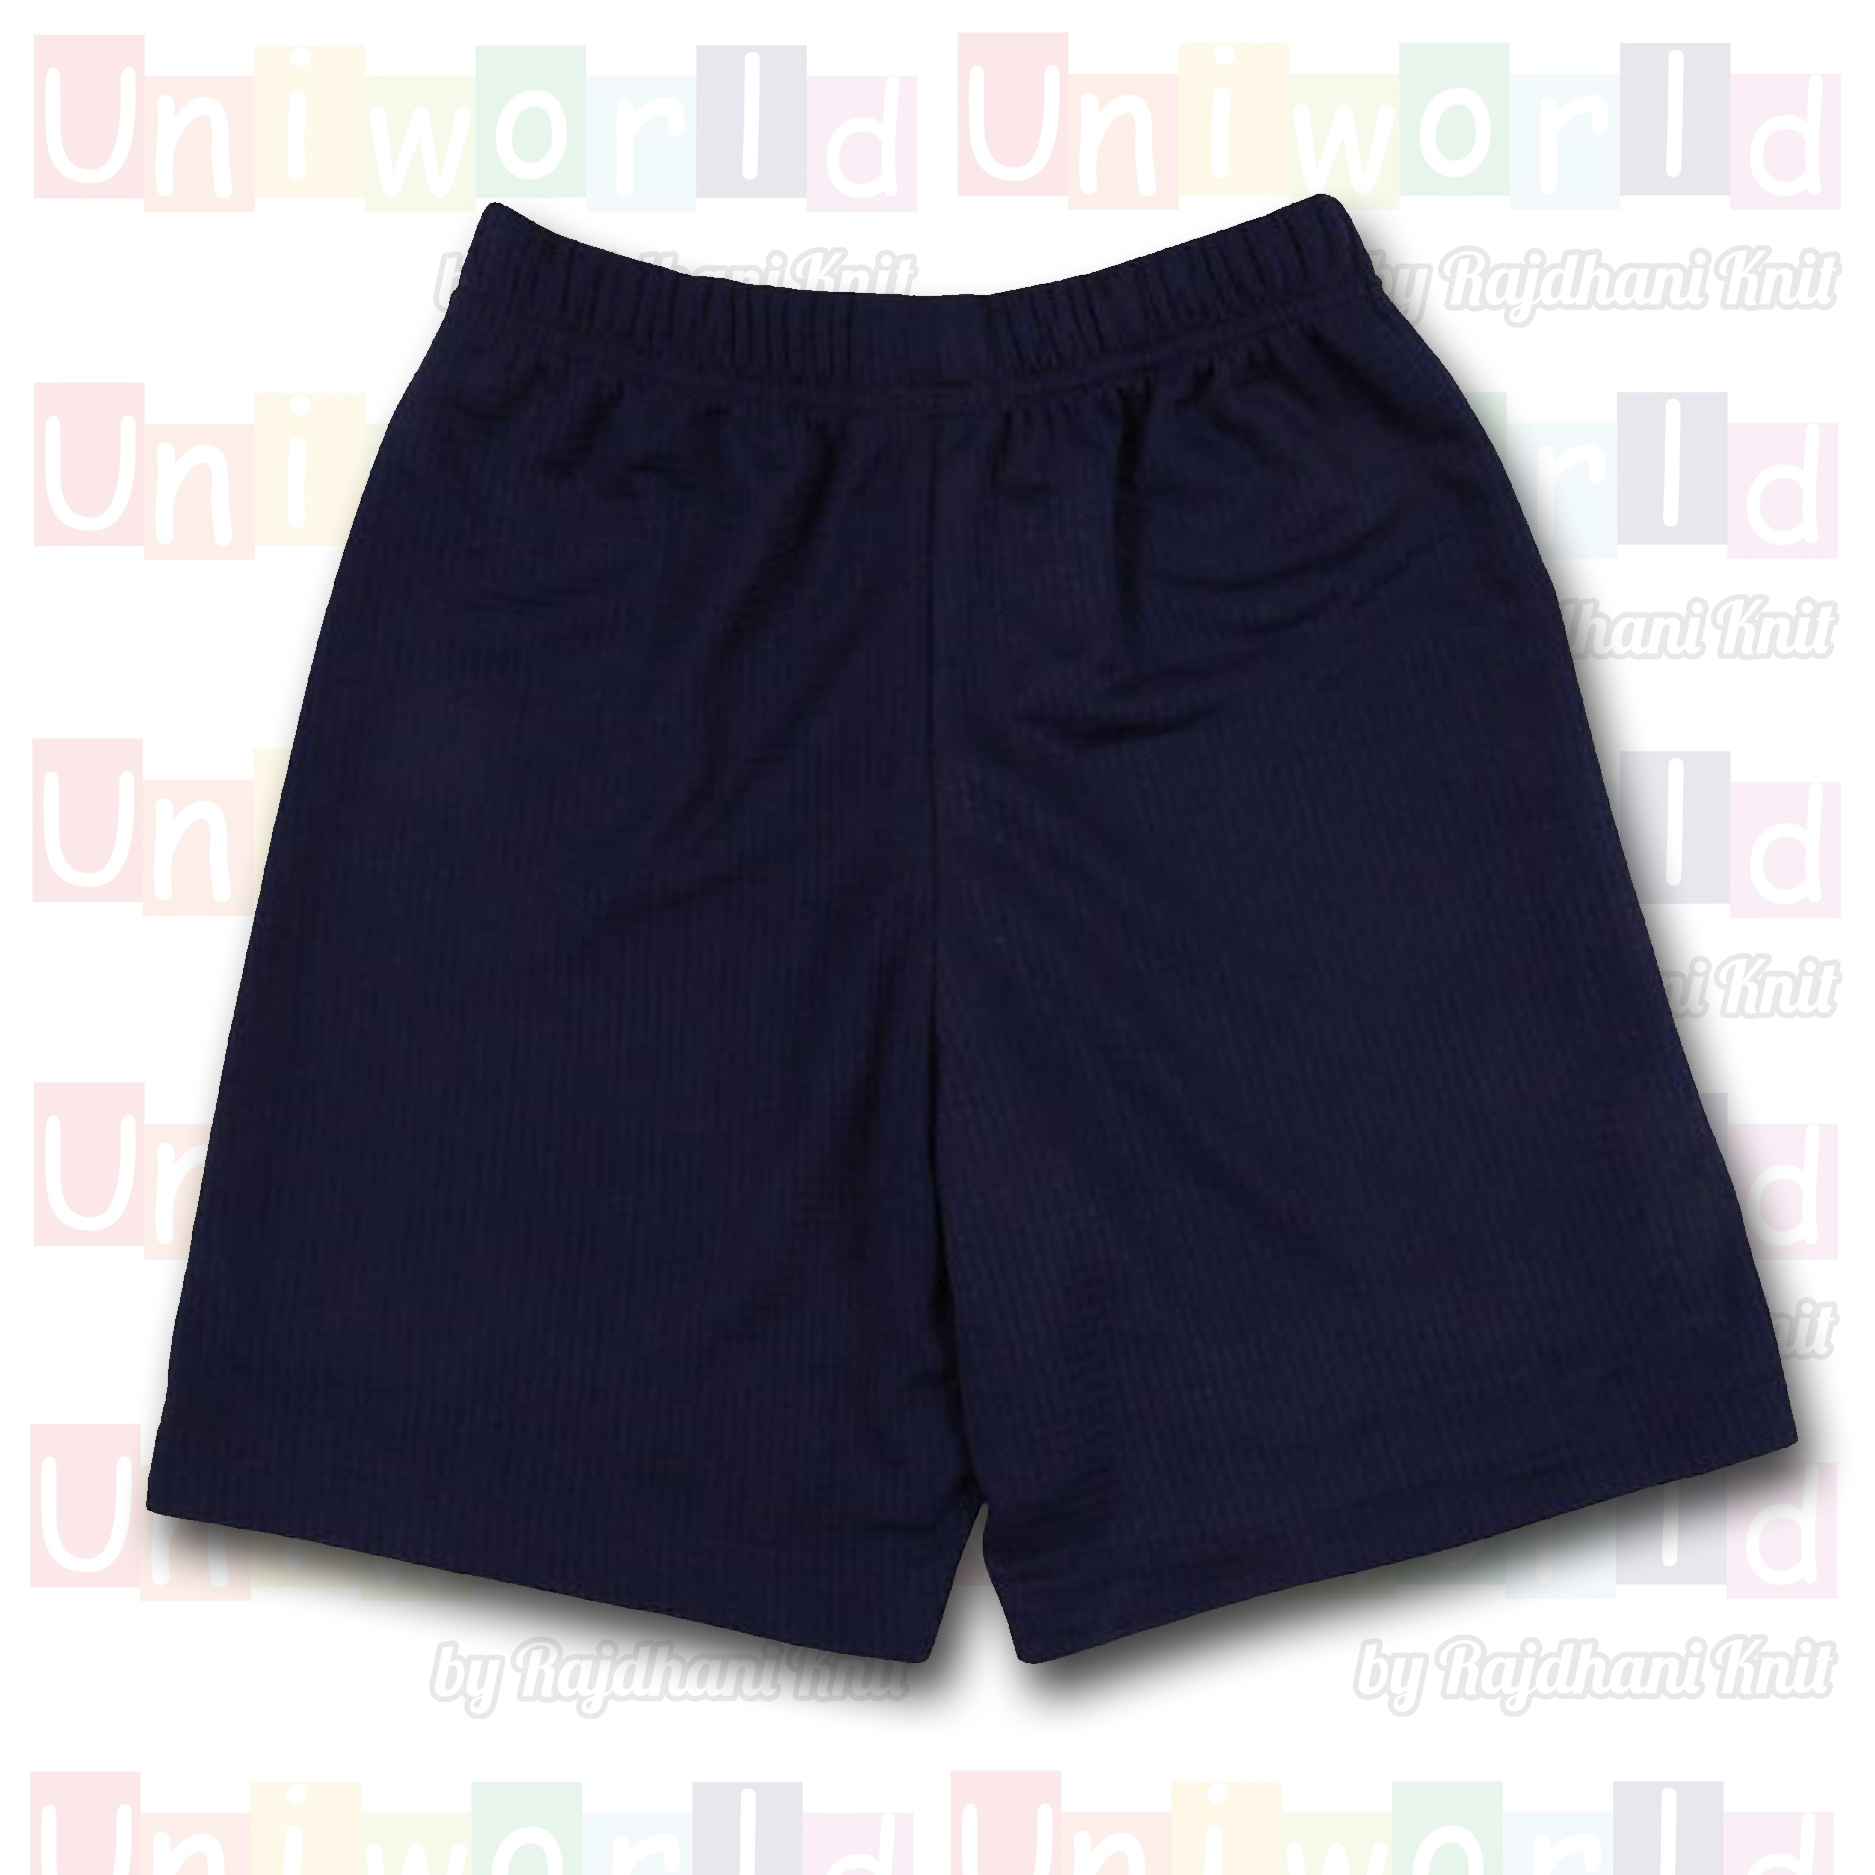 Uniform Sports Shorts